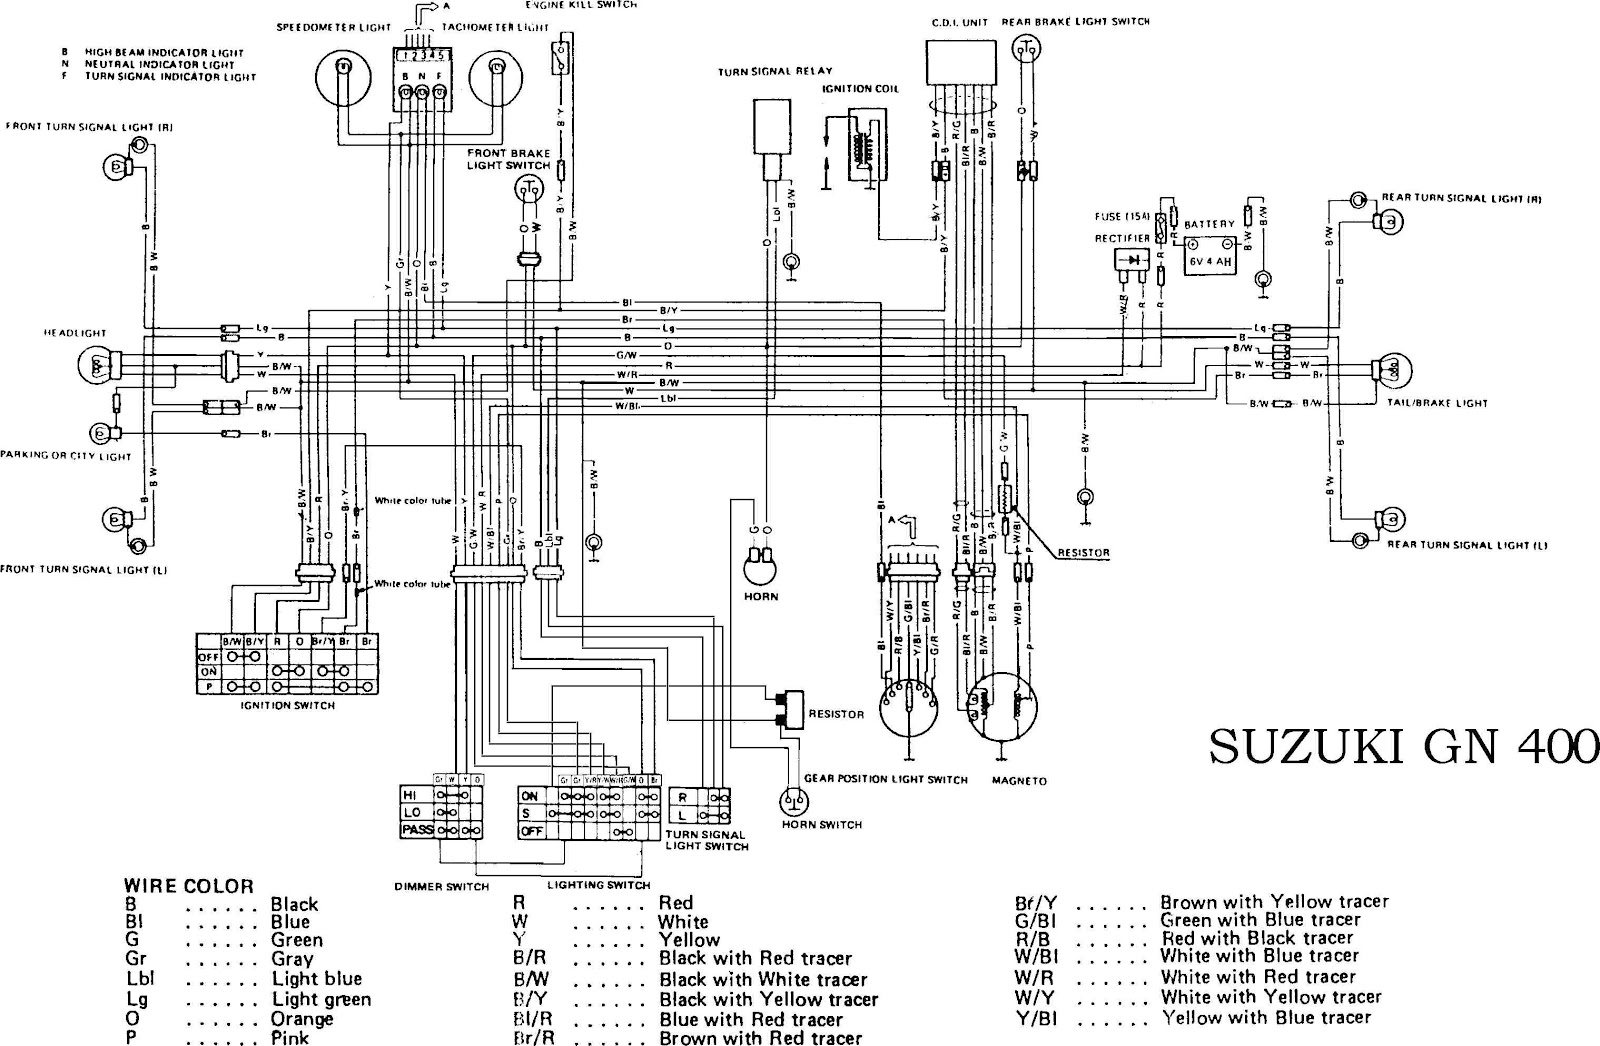 Wiring Diagrams Suzuki Motorcycle : Suzuki gn motorcycle complete electrical wiring diagram